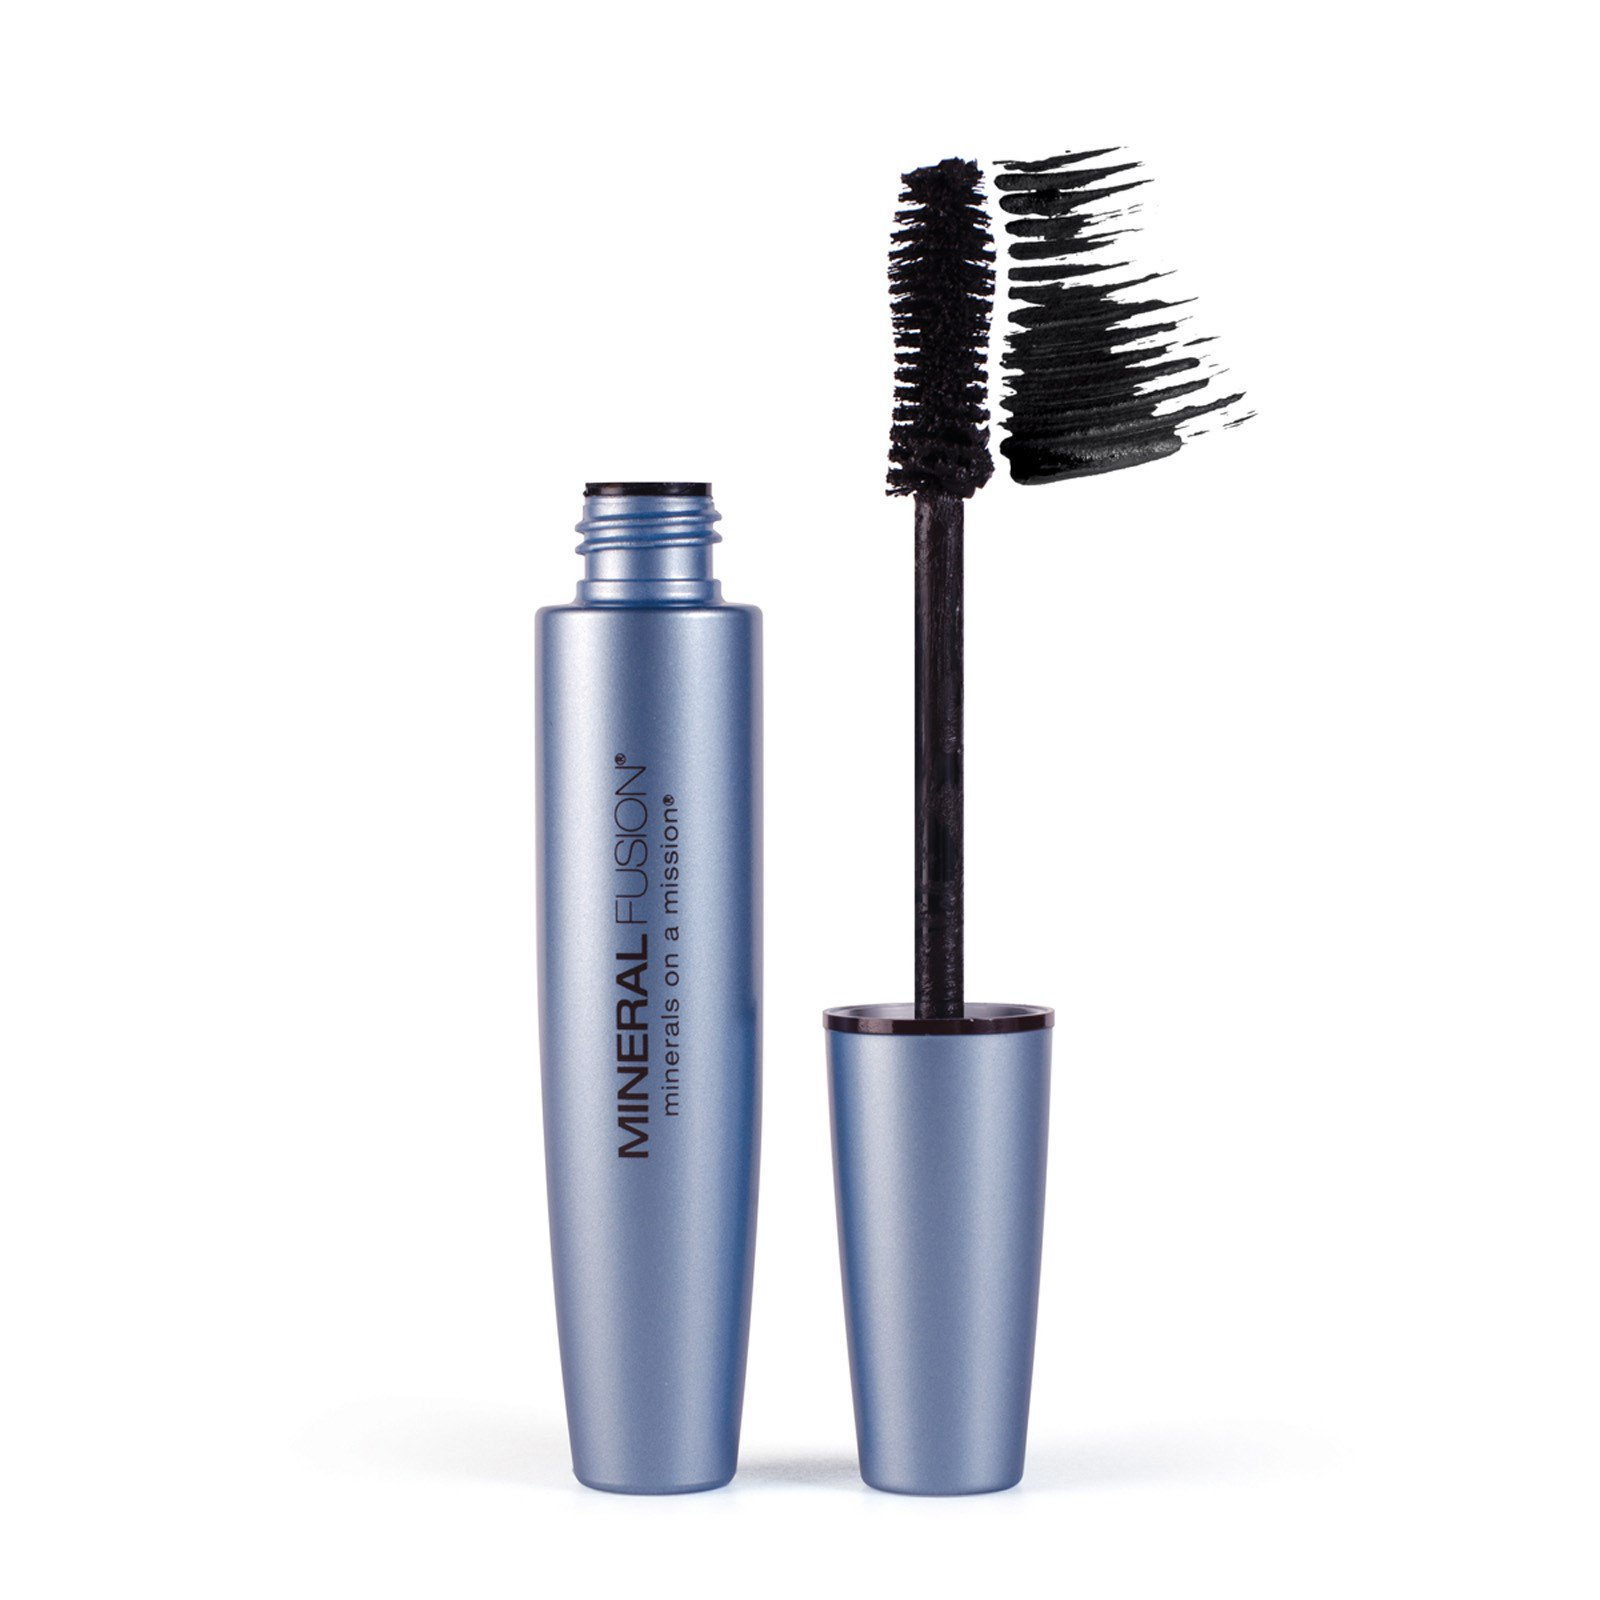 Waterproof Mineral Mascara by mineral fusion #4